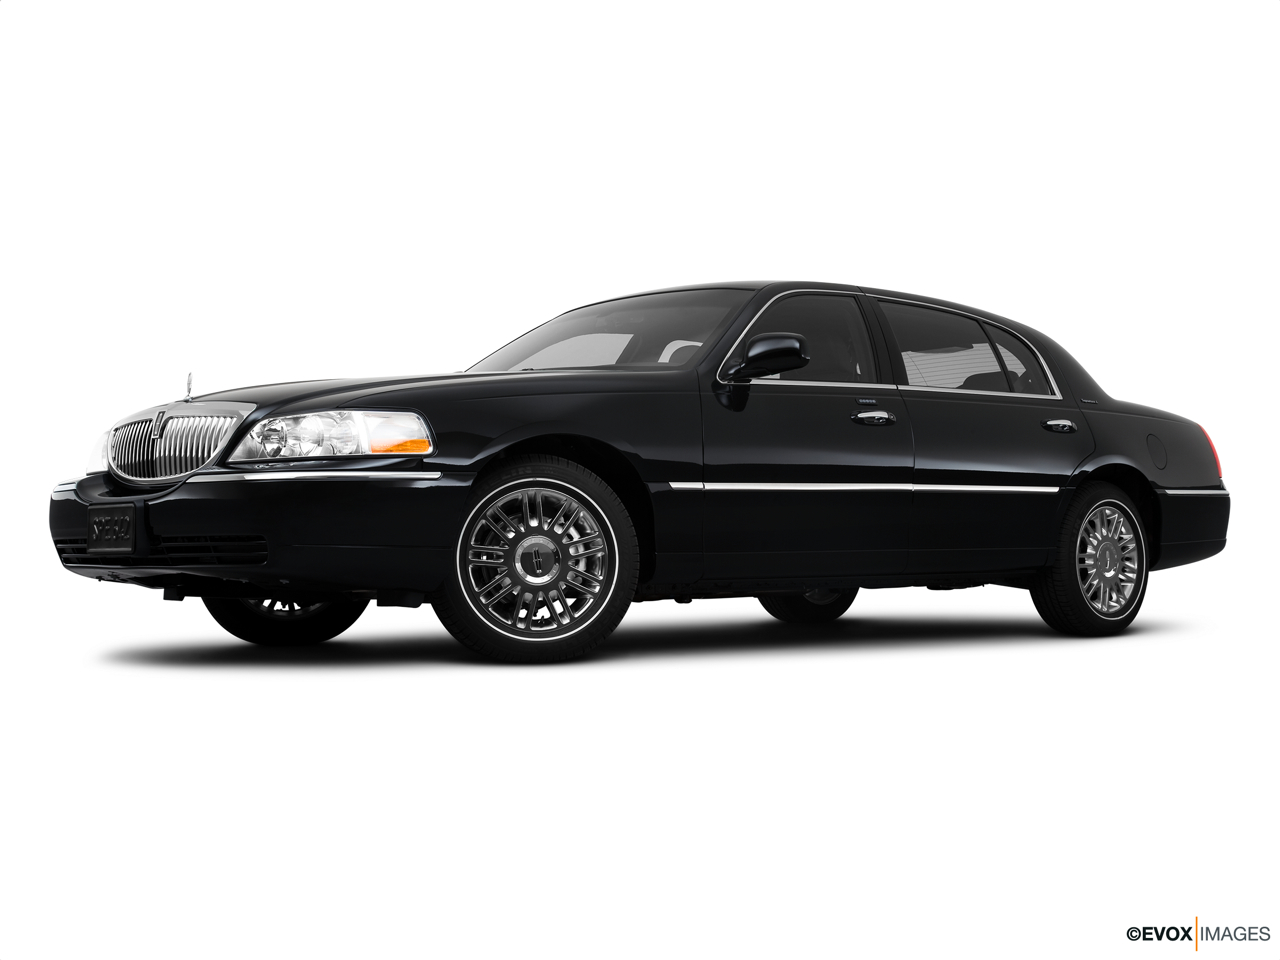 2010 Lincoln Town Car Signature L Low/wide front 5/8.